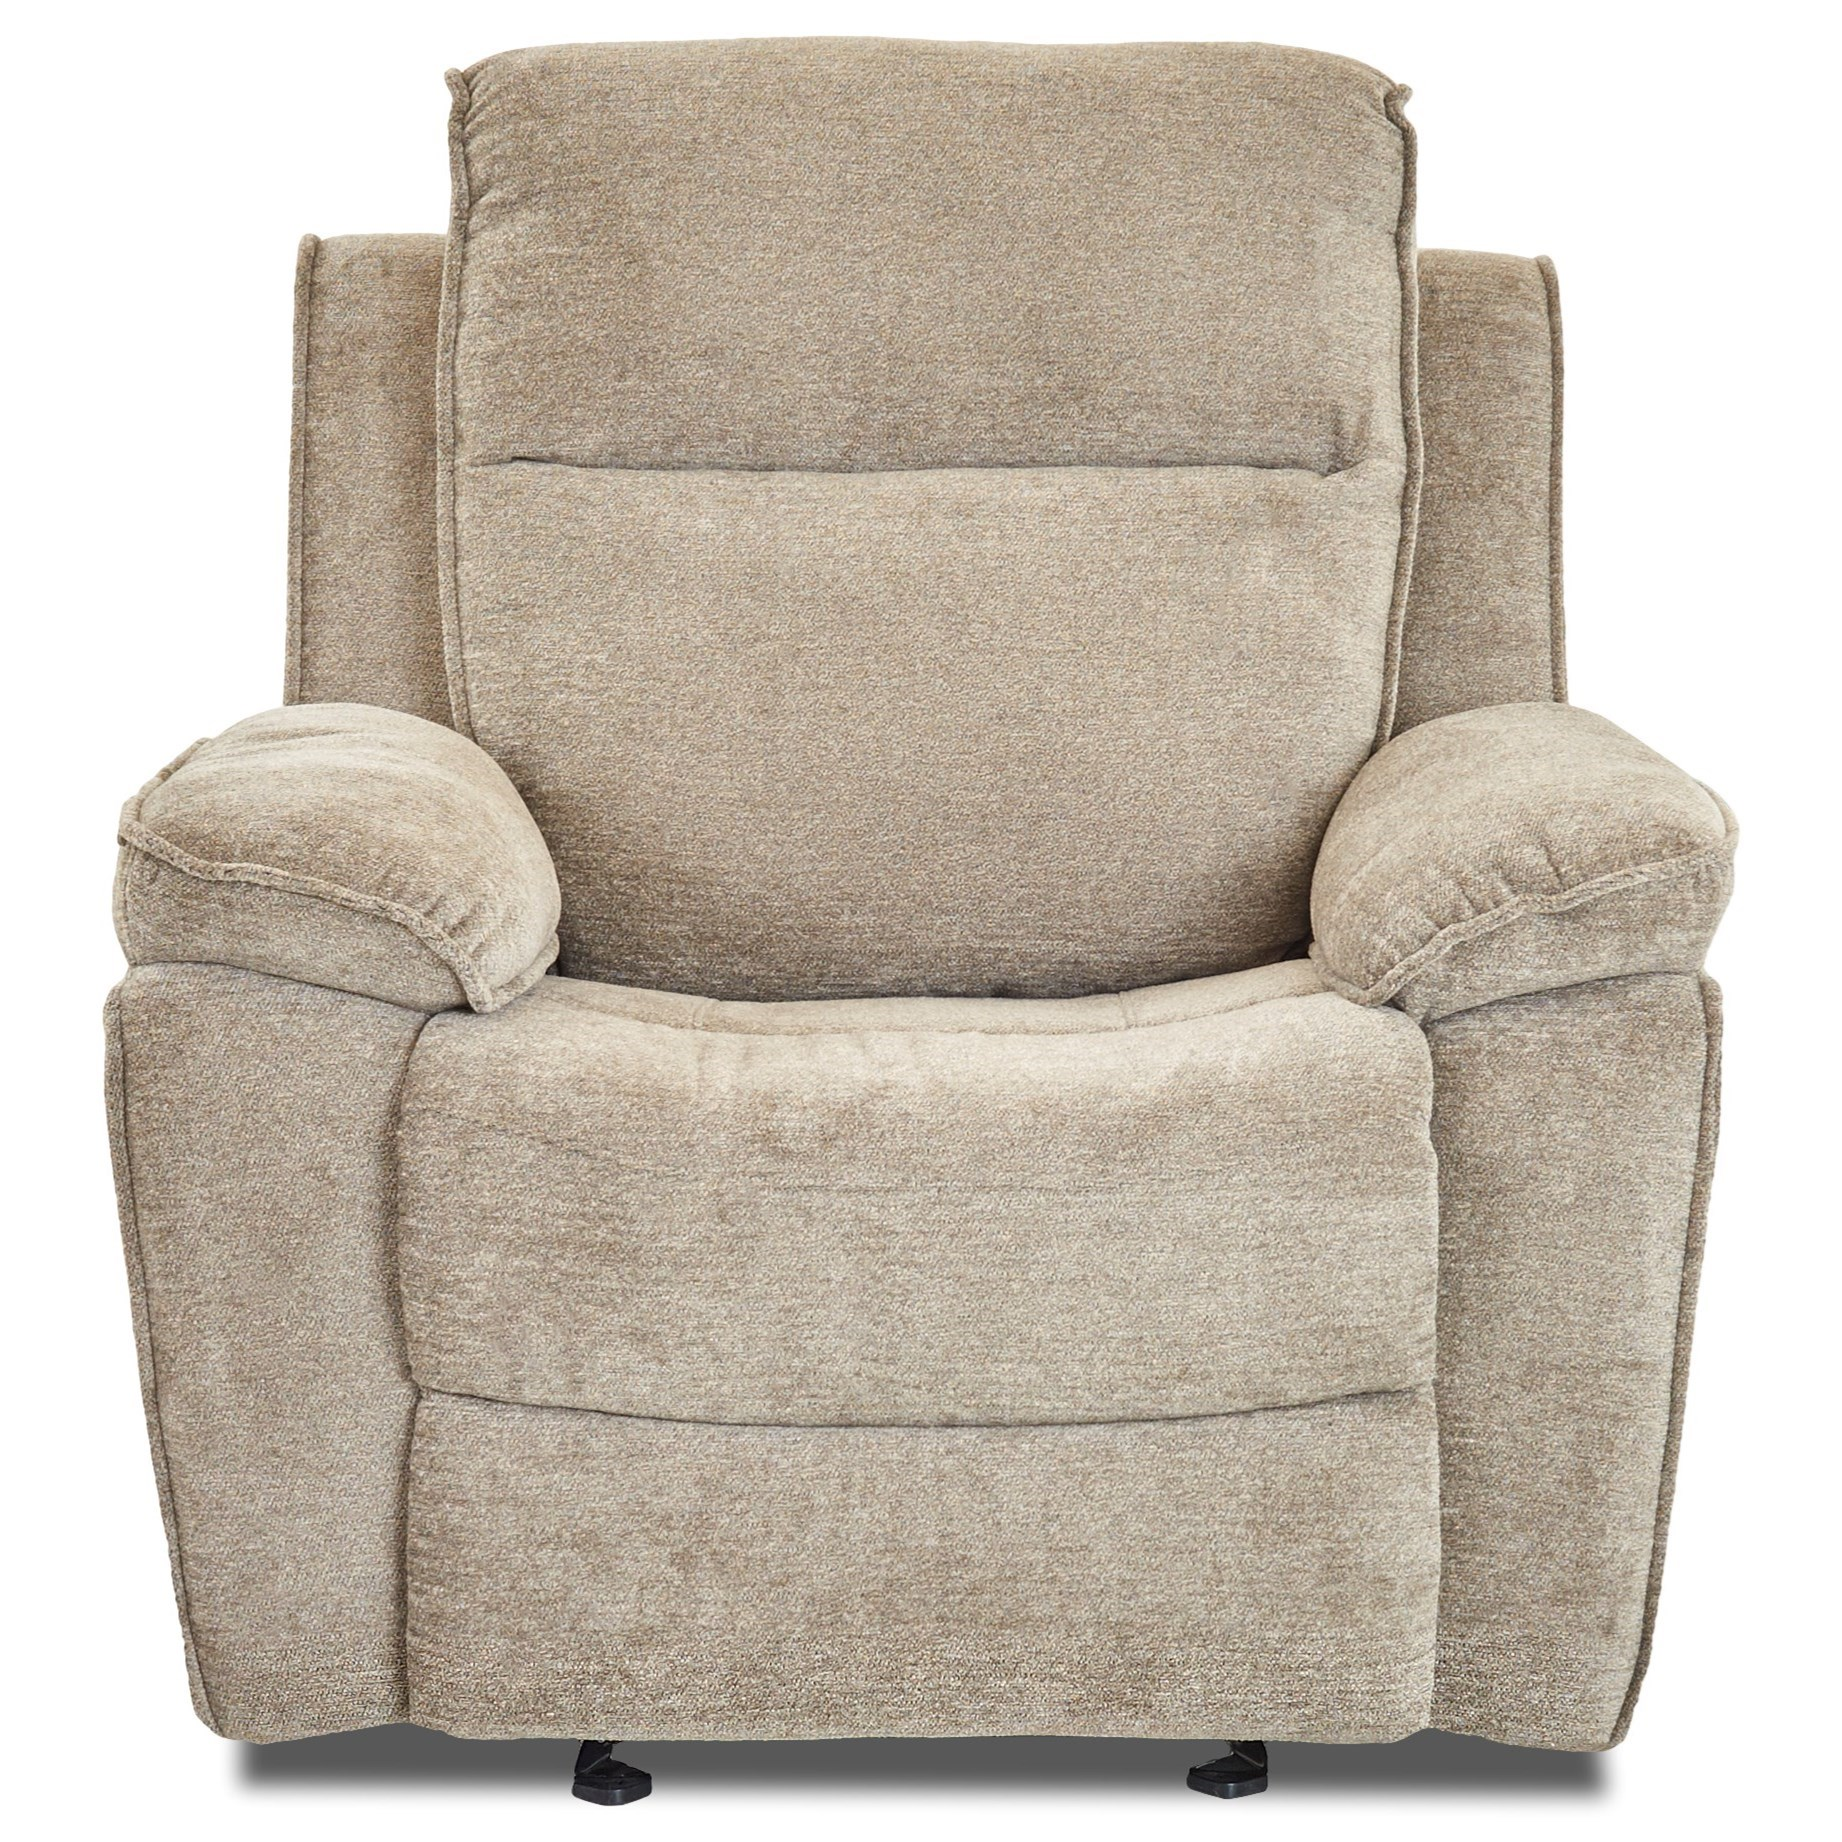 Castaway Casual Reclining Rocking Chair by Klaussner at Godby Home Furnishings